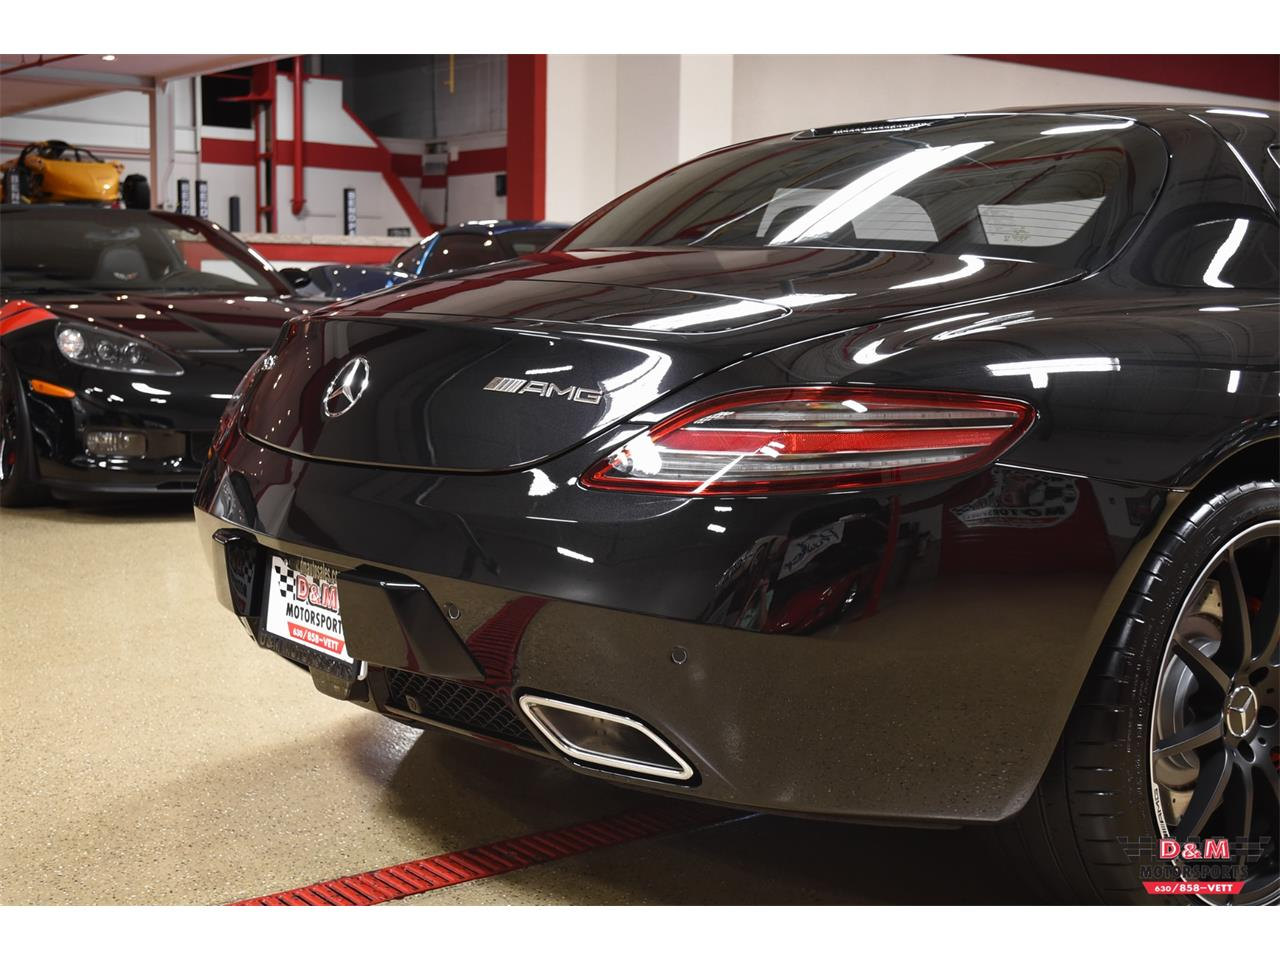 Large Picture of '12 SLS AMG located in Glen Ellyn Illinois - $199,995.00 Offered by D & M Motorsports - PXCB